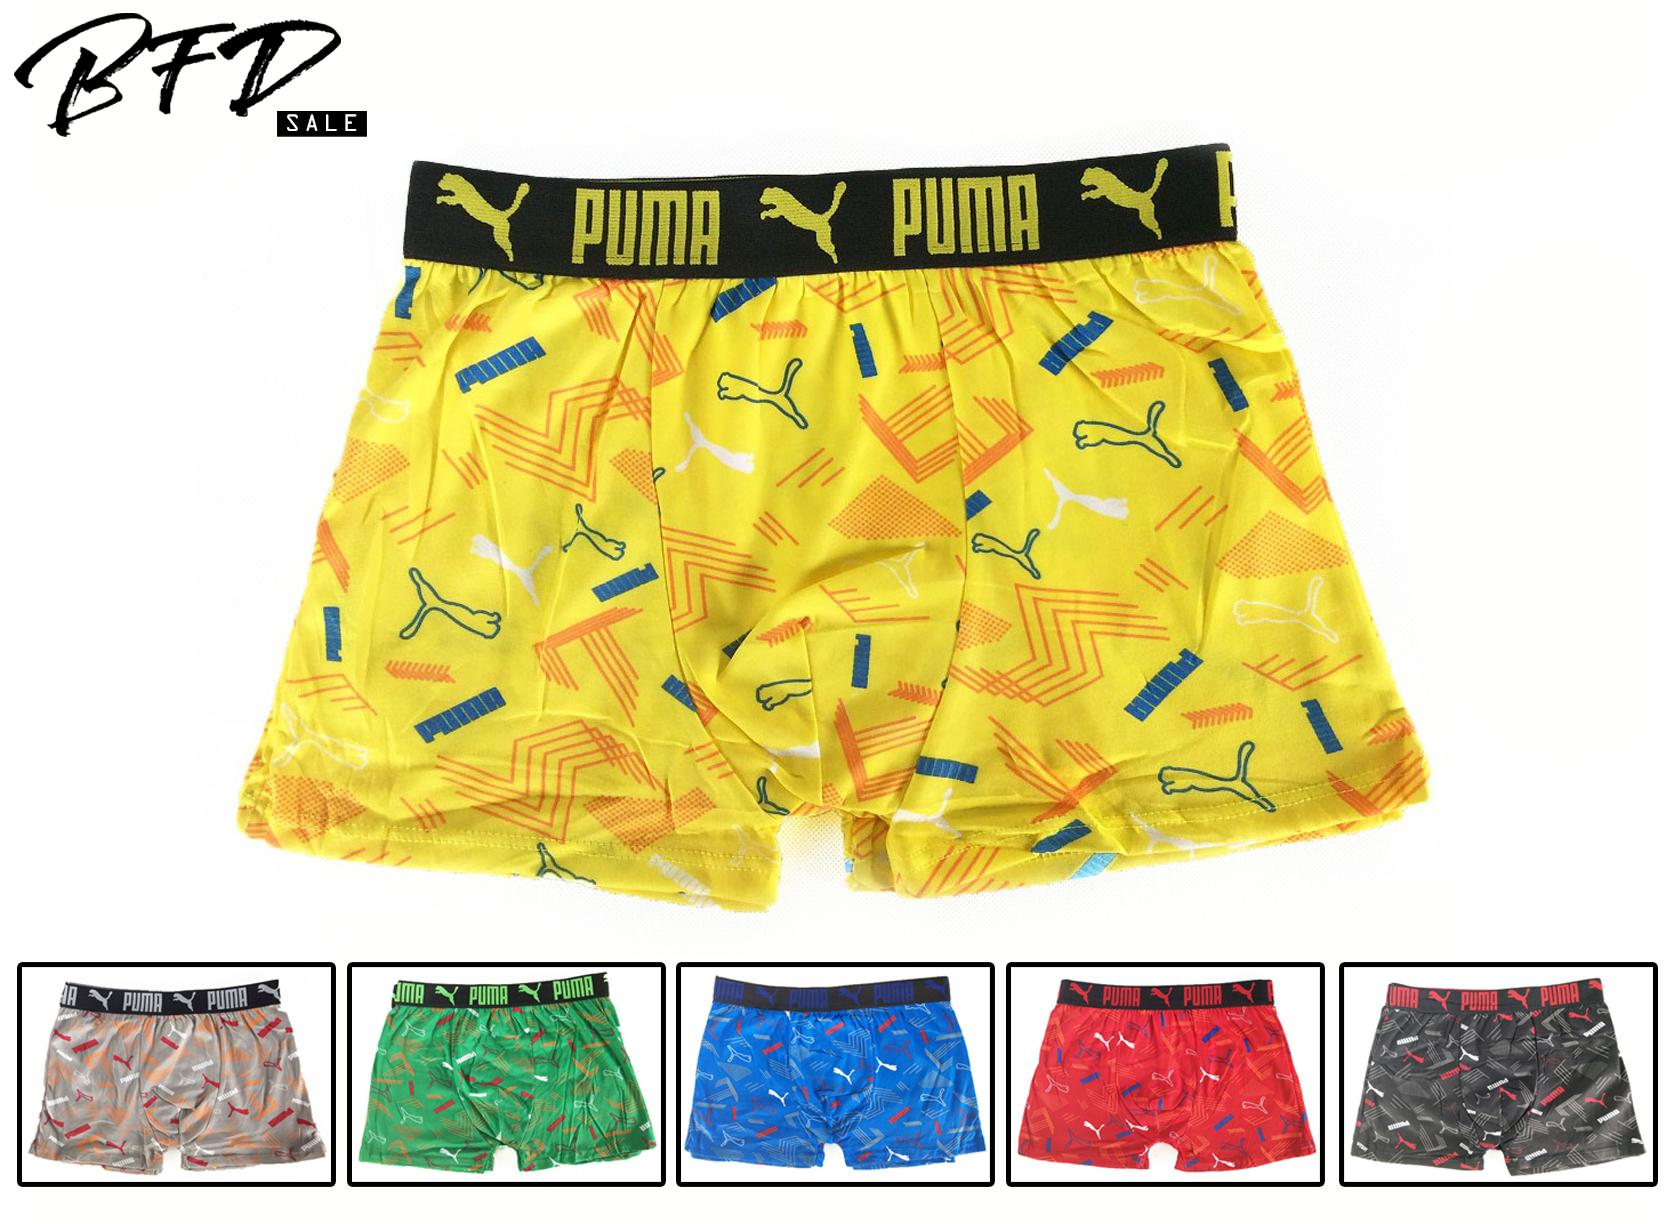 6 Pcs Mens Cotton Boxer Shorts / Brief / Underwear / Trunks By Direct Factory Sales.